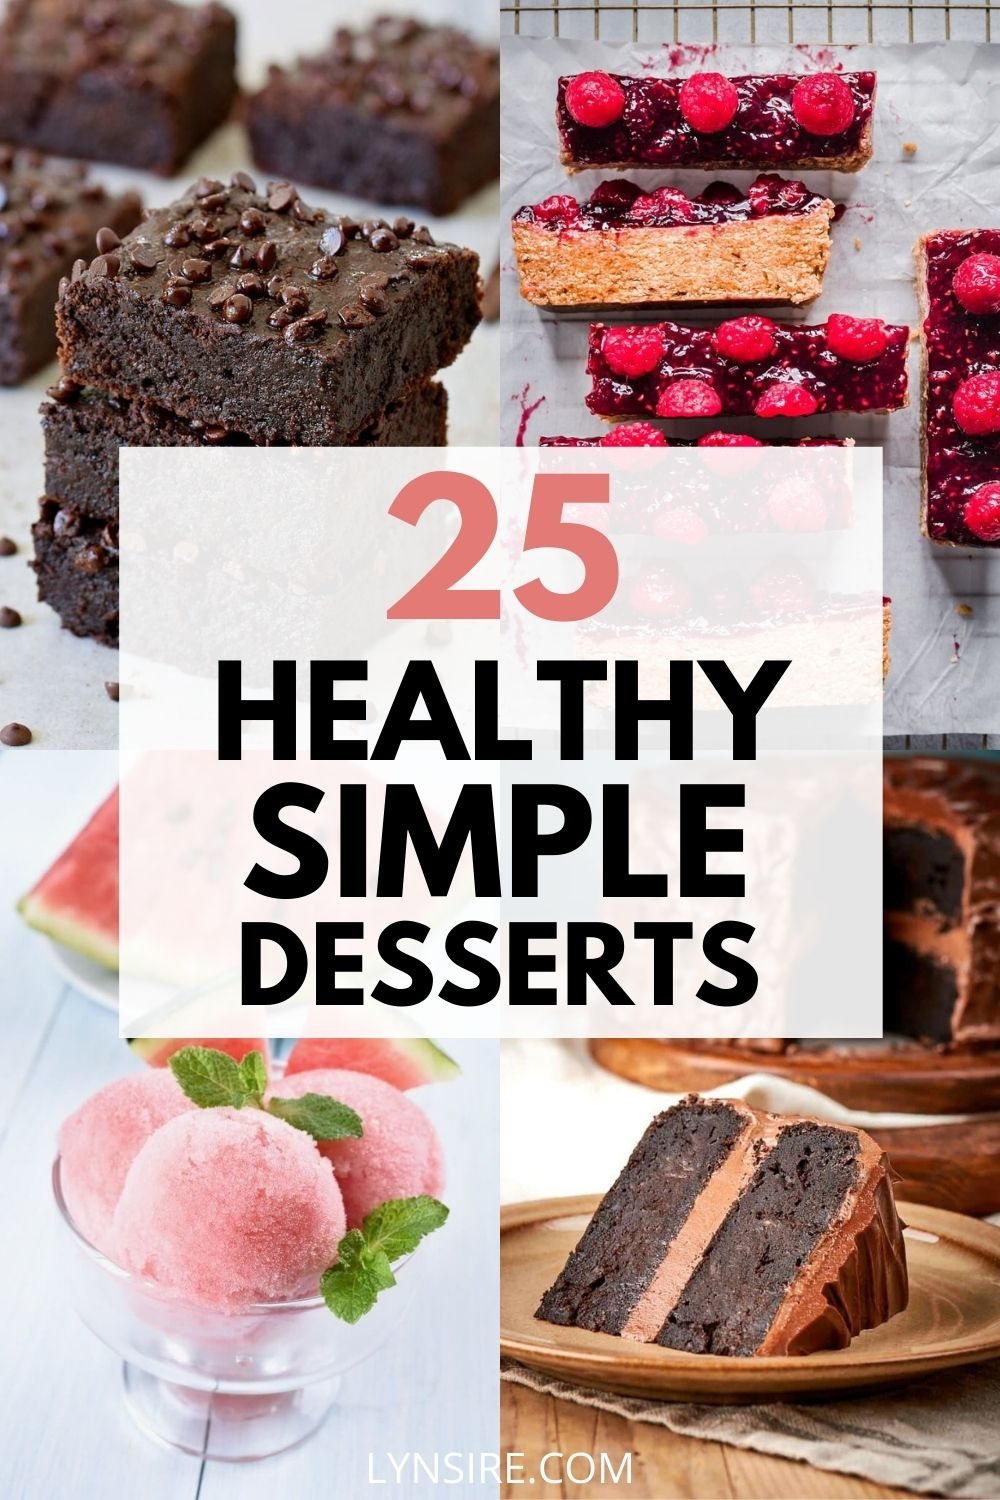 Healthy simple desserts